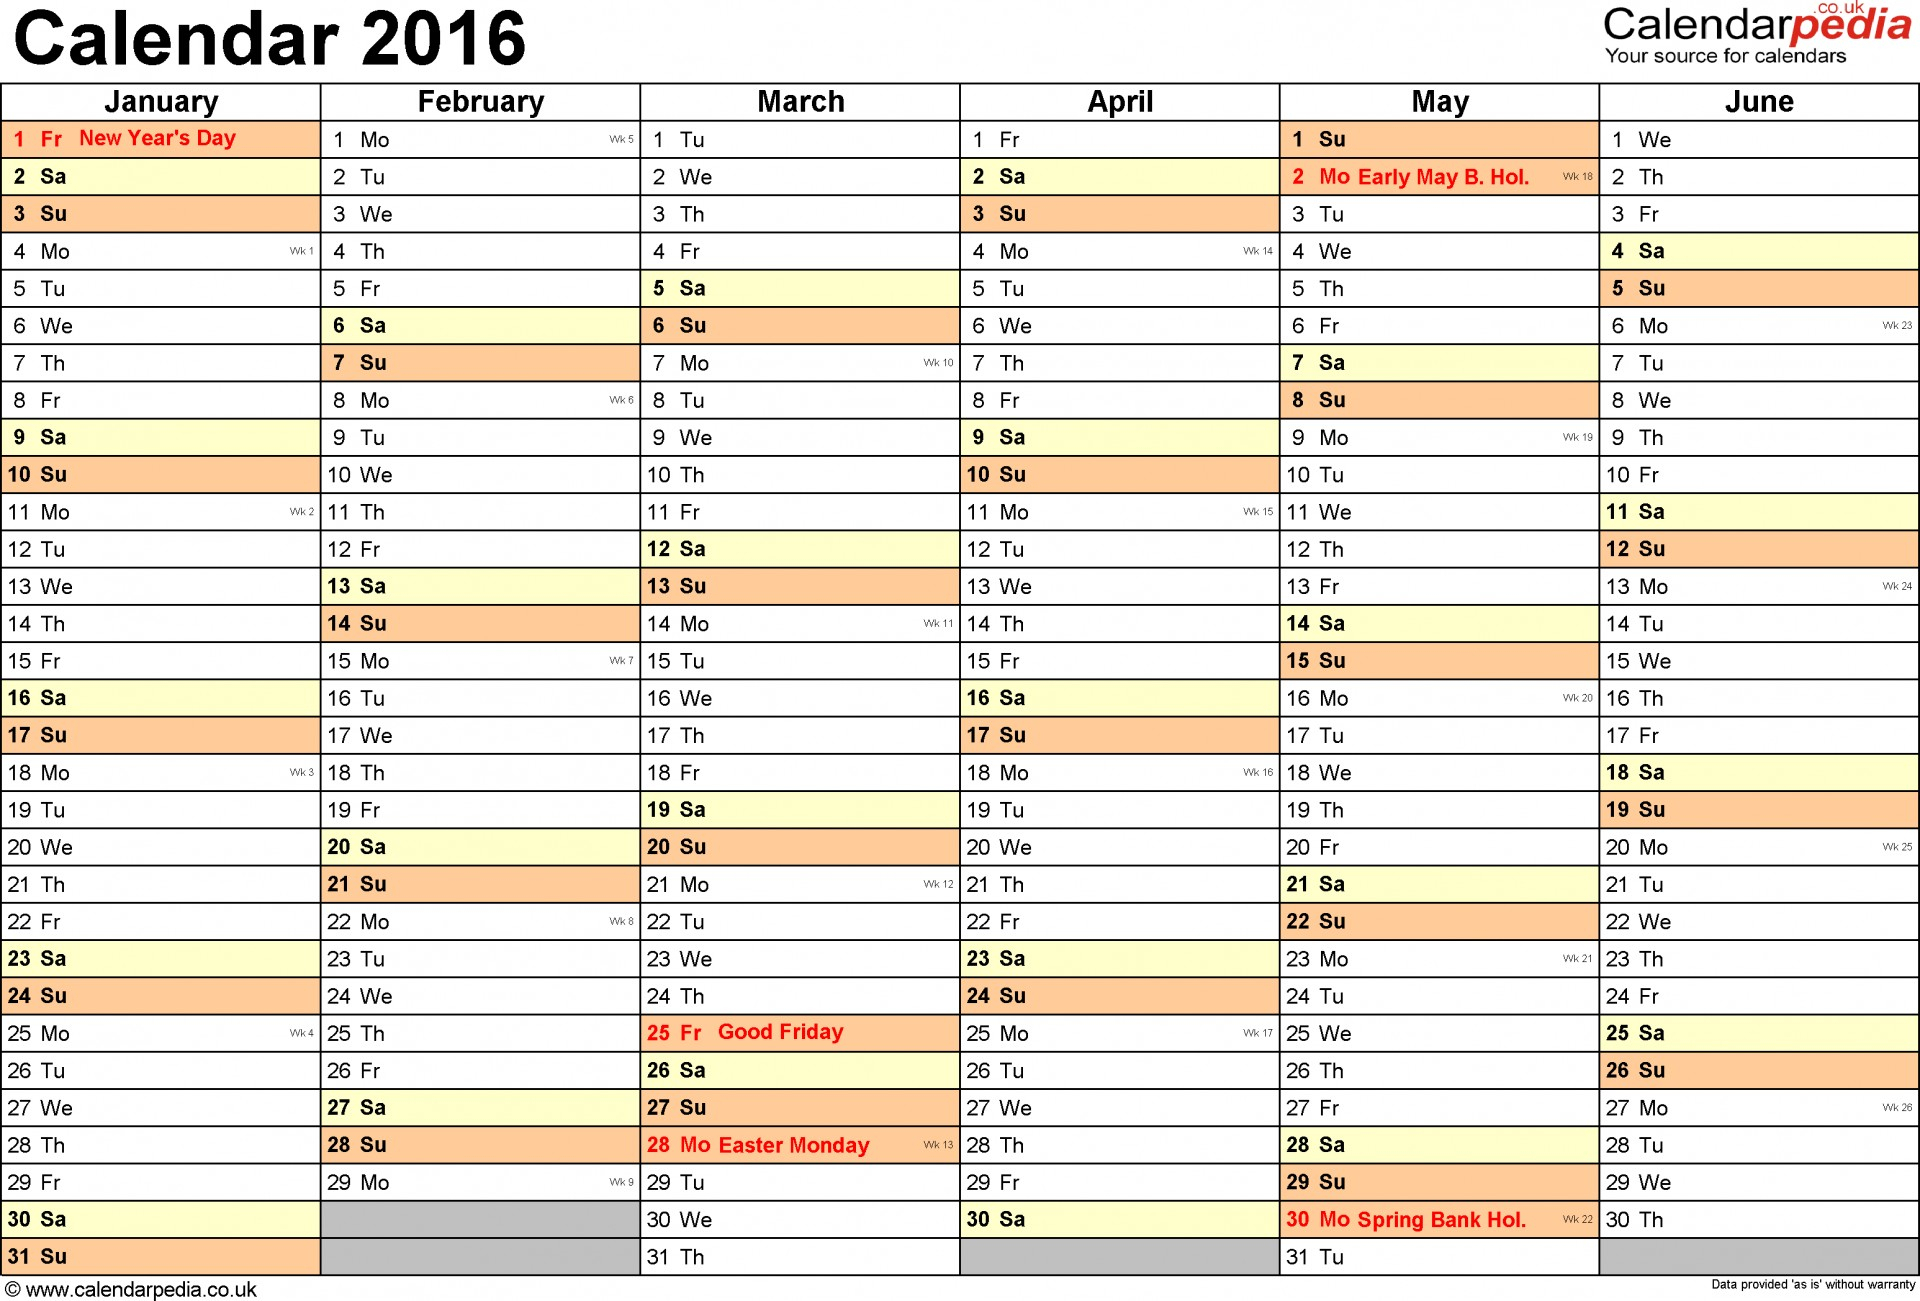 042 Weekly Schedule Lg Template Ideas Calendar Awful 2016 pertaining to Calendarpedia Weekly Schedule